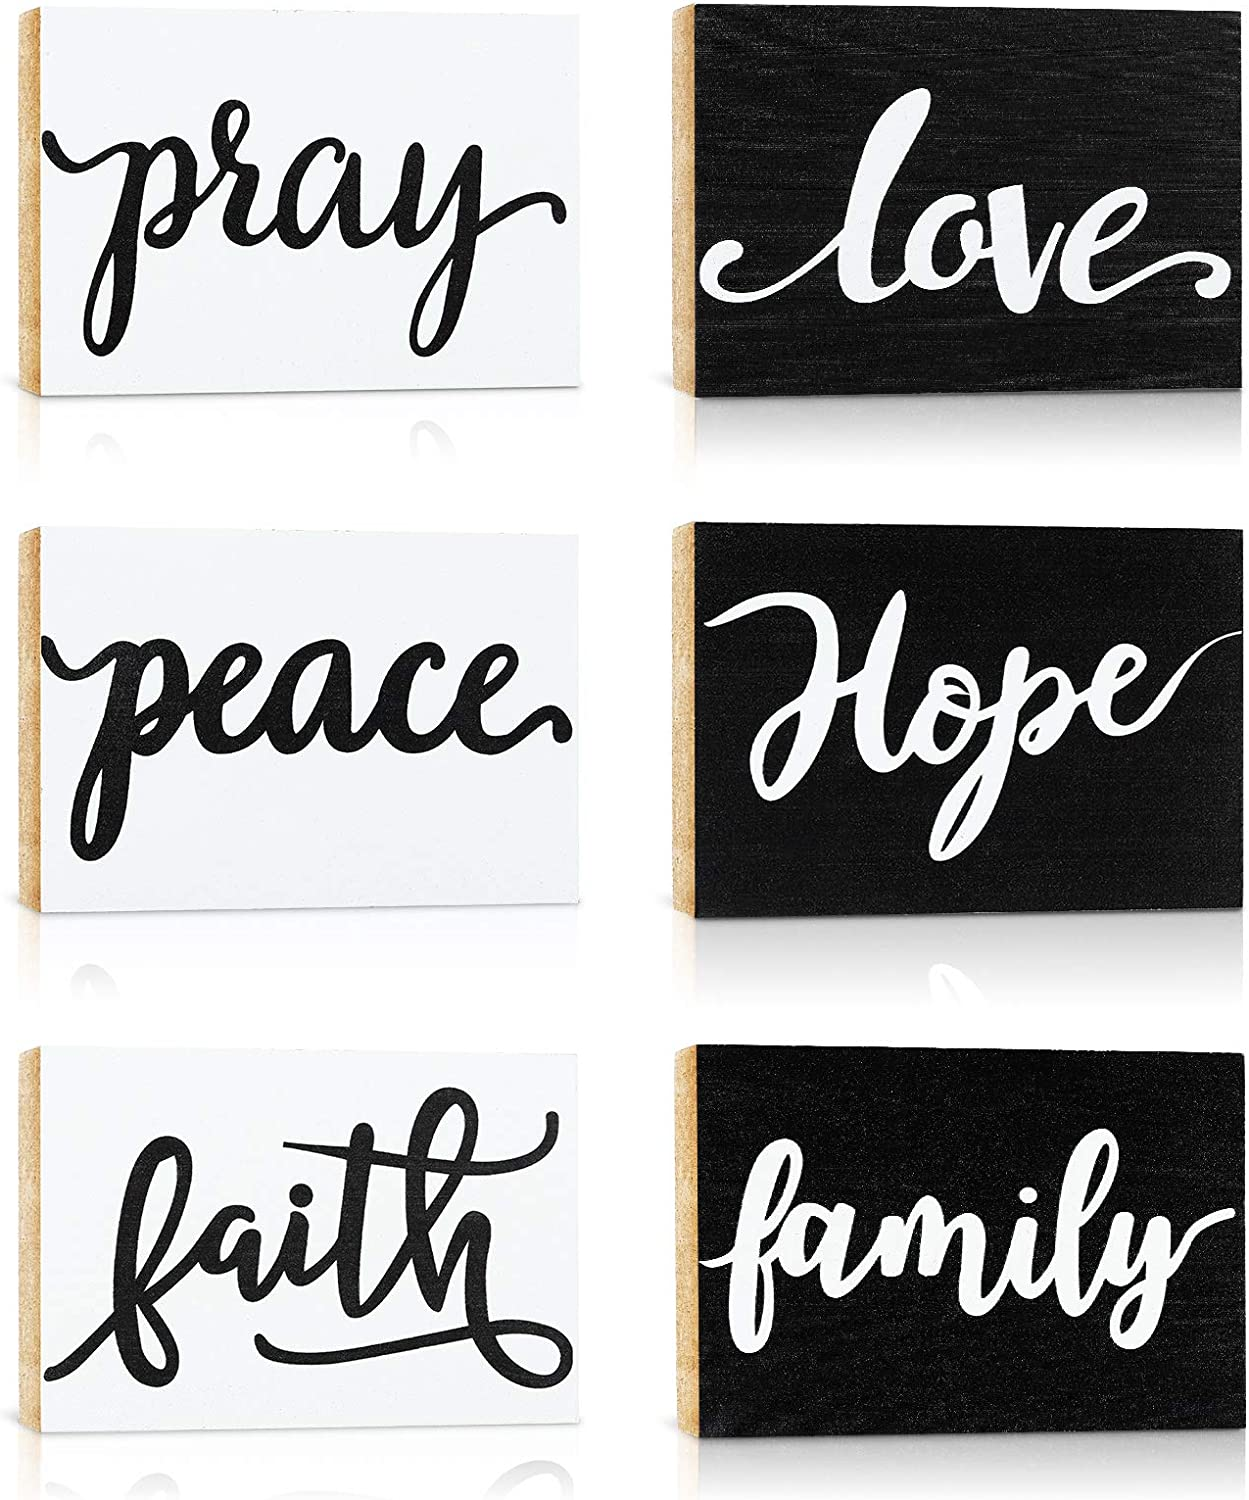 6 Pieces Peace Love Faith Pray Hope Family Wood Signs Inspirational Words Art Print Wood Blocks Decorative Tiered Tray Signs for Window Sill Wall Decoration